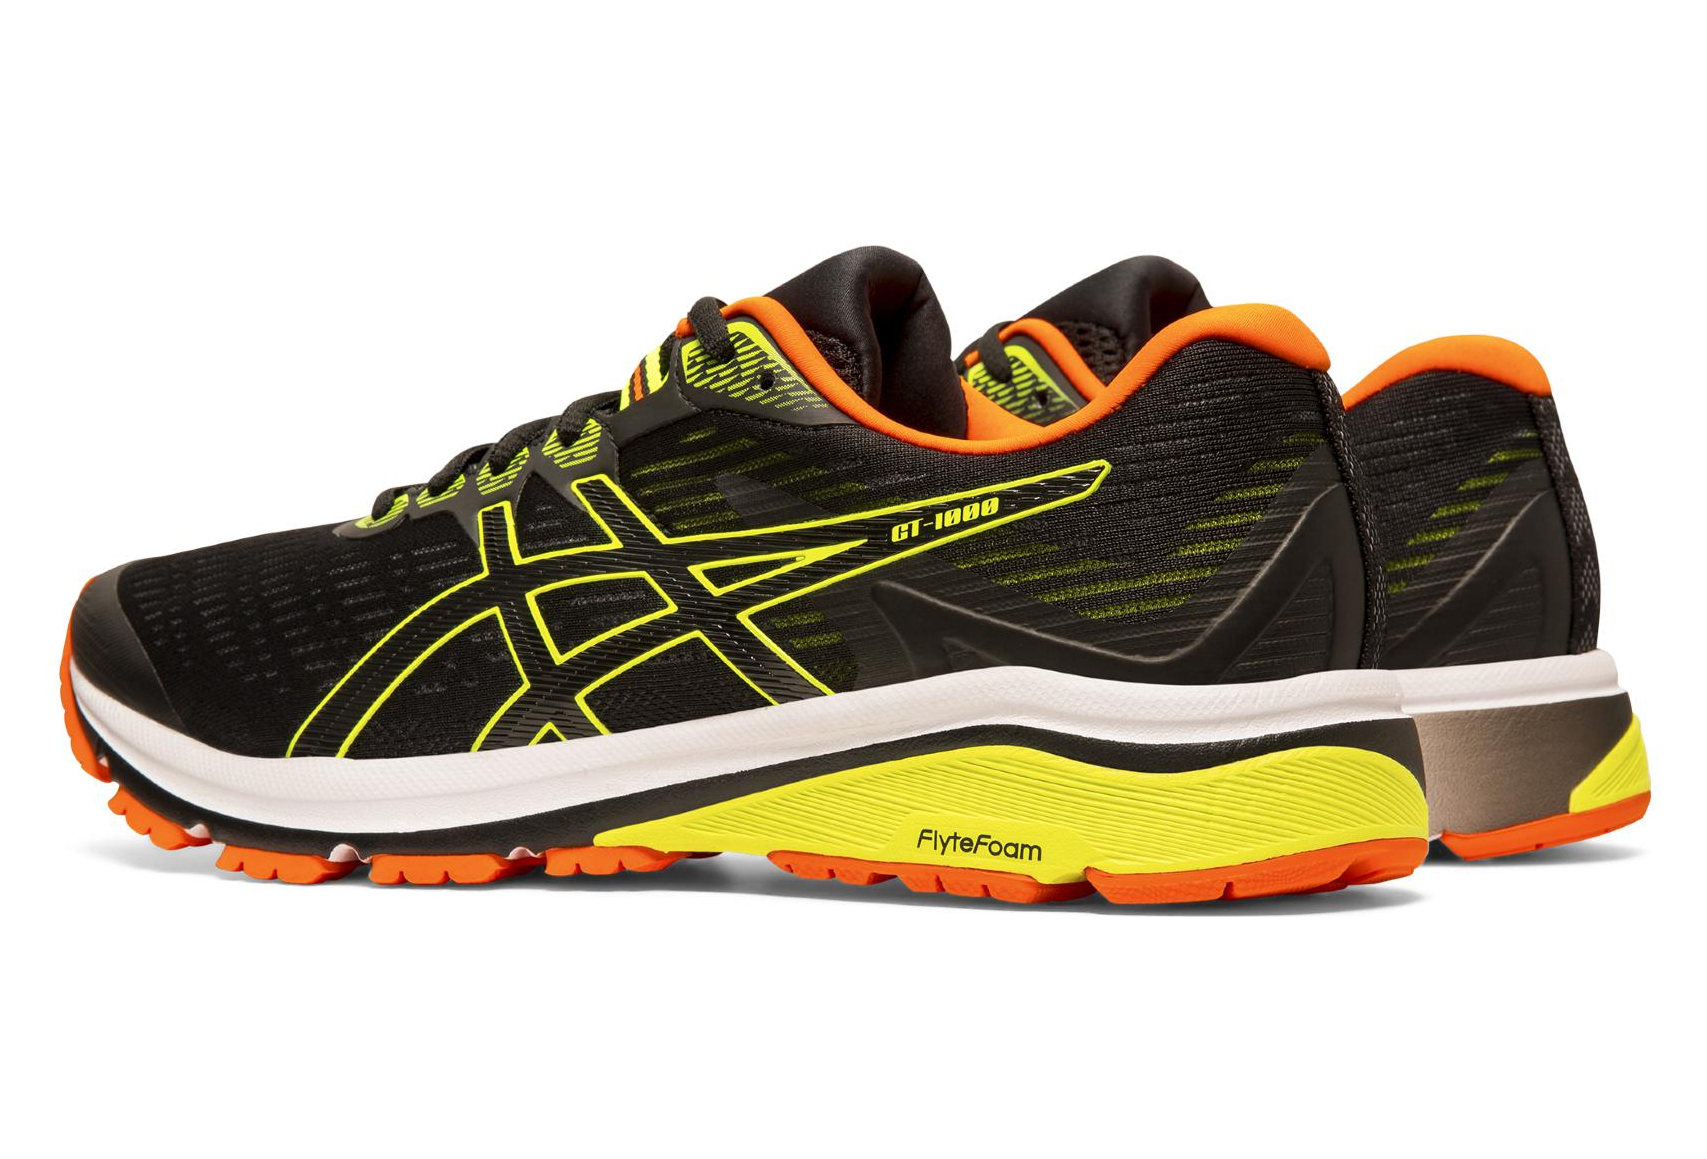 chaussures de sport 5fd6d 9ee0d Asics GT-1000 8 Black Yellow Orange Men